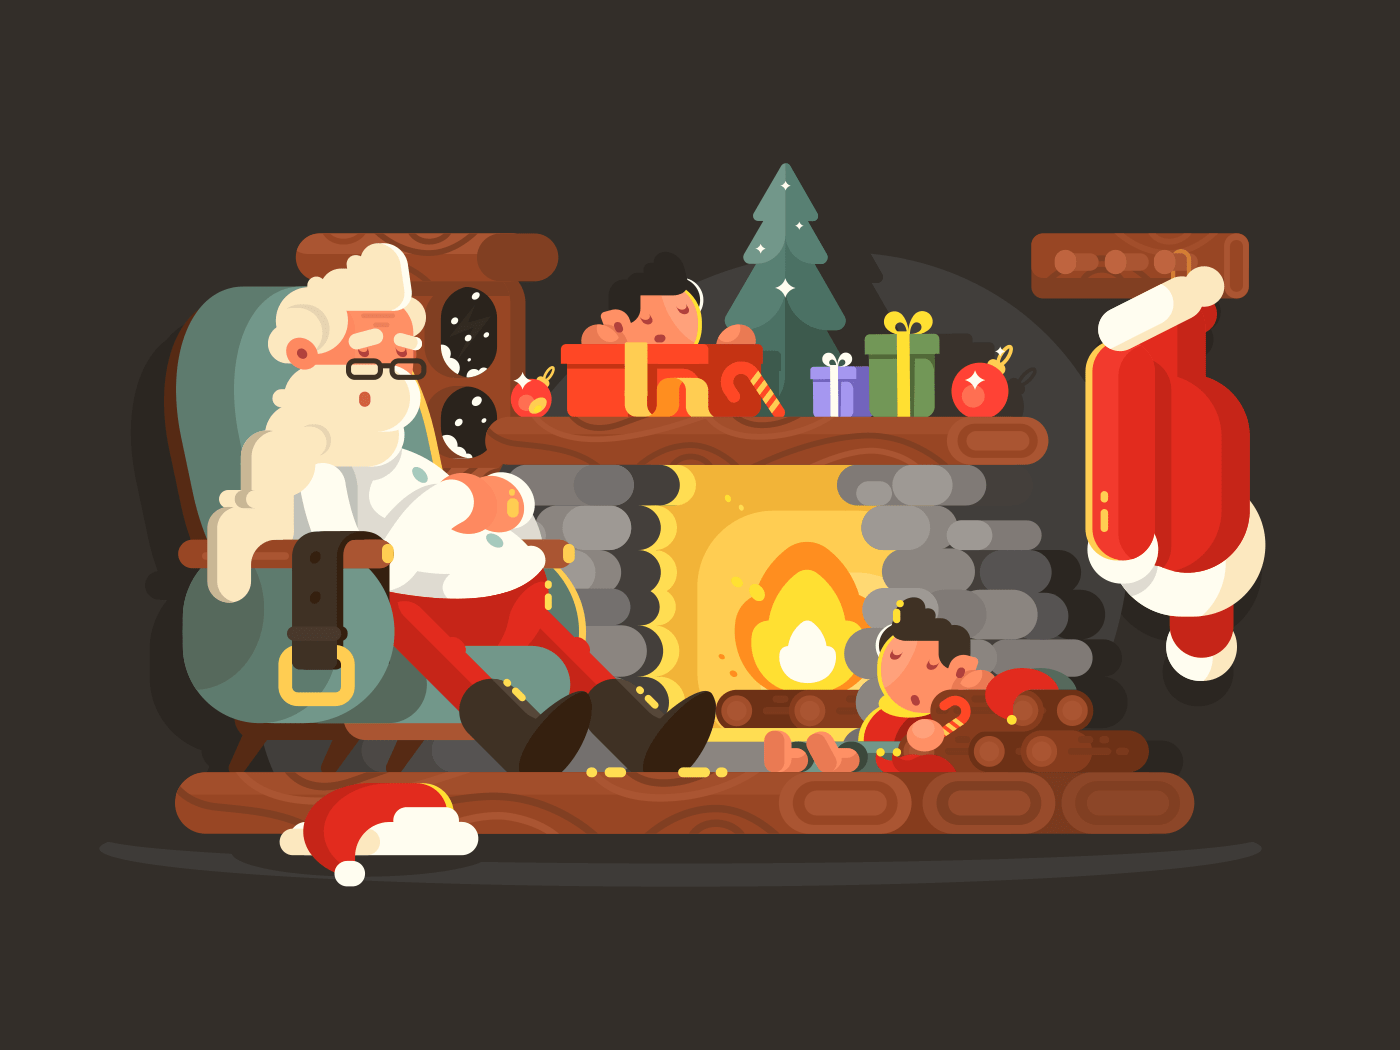 Character Santa Claus on chair near fireplace illustration